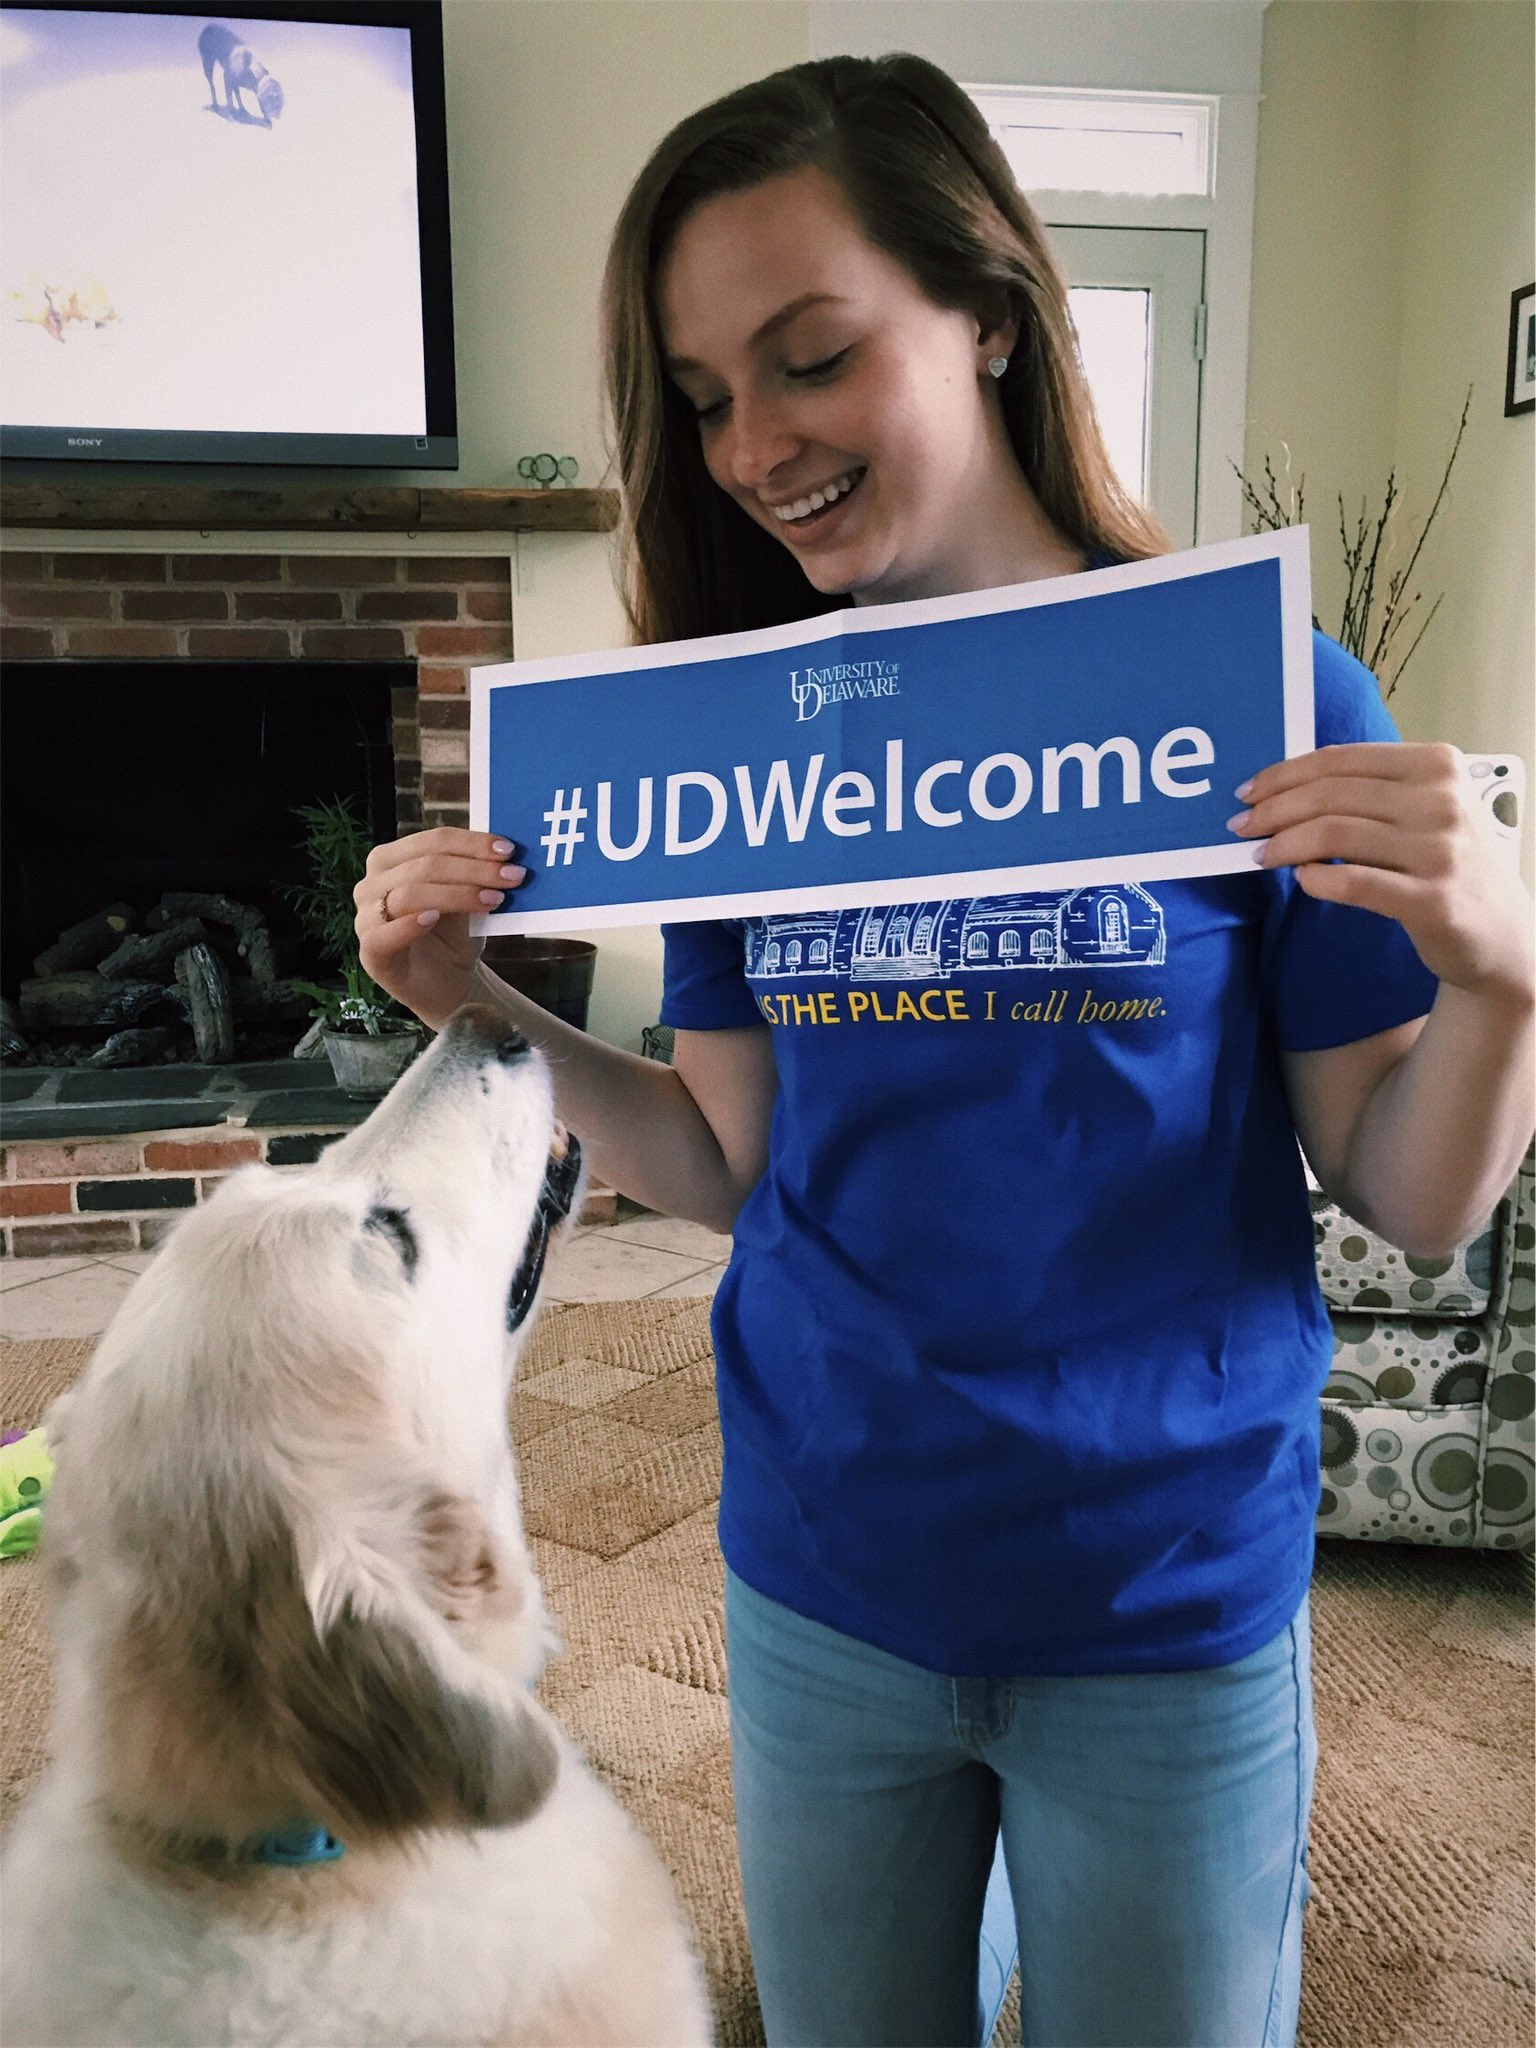 Maxy and I are both excited that I finally committed to UD!! 💙 #UDWelcome https://t.co/ytGRMCWOXJ